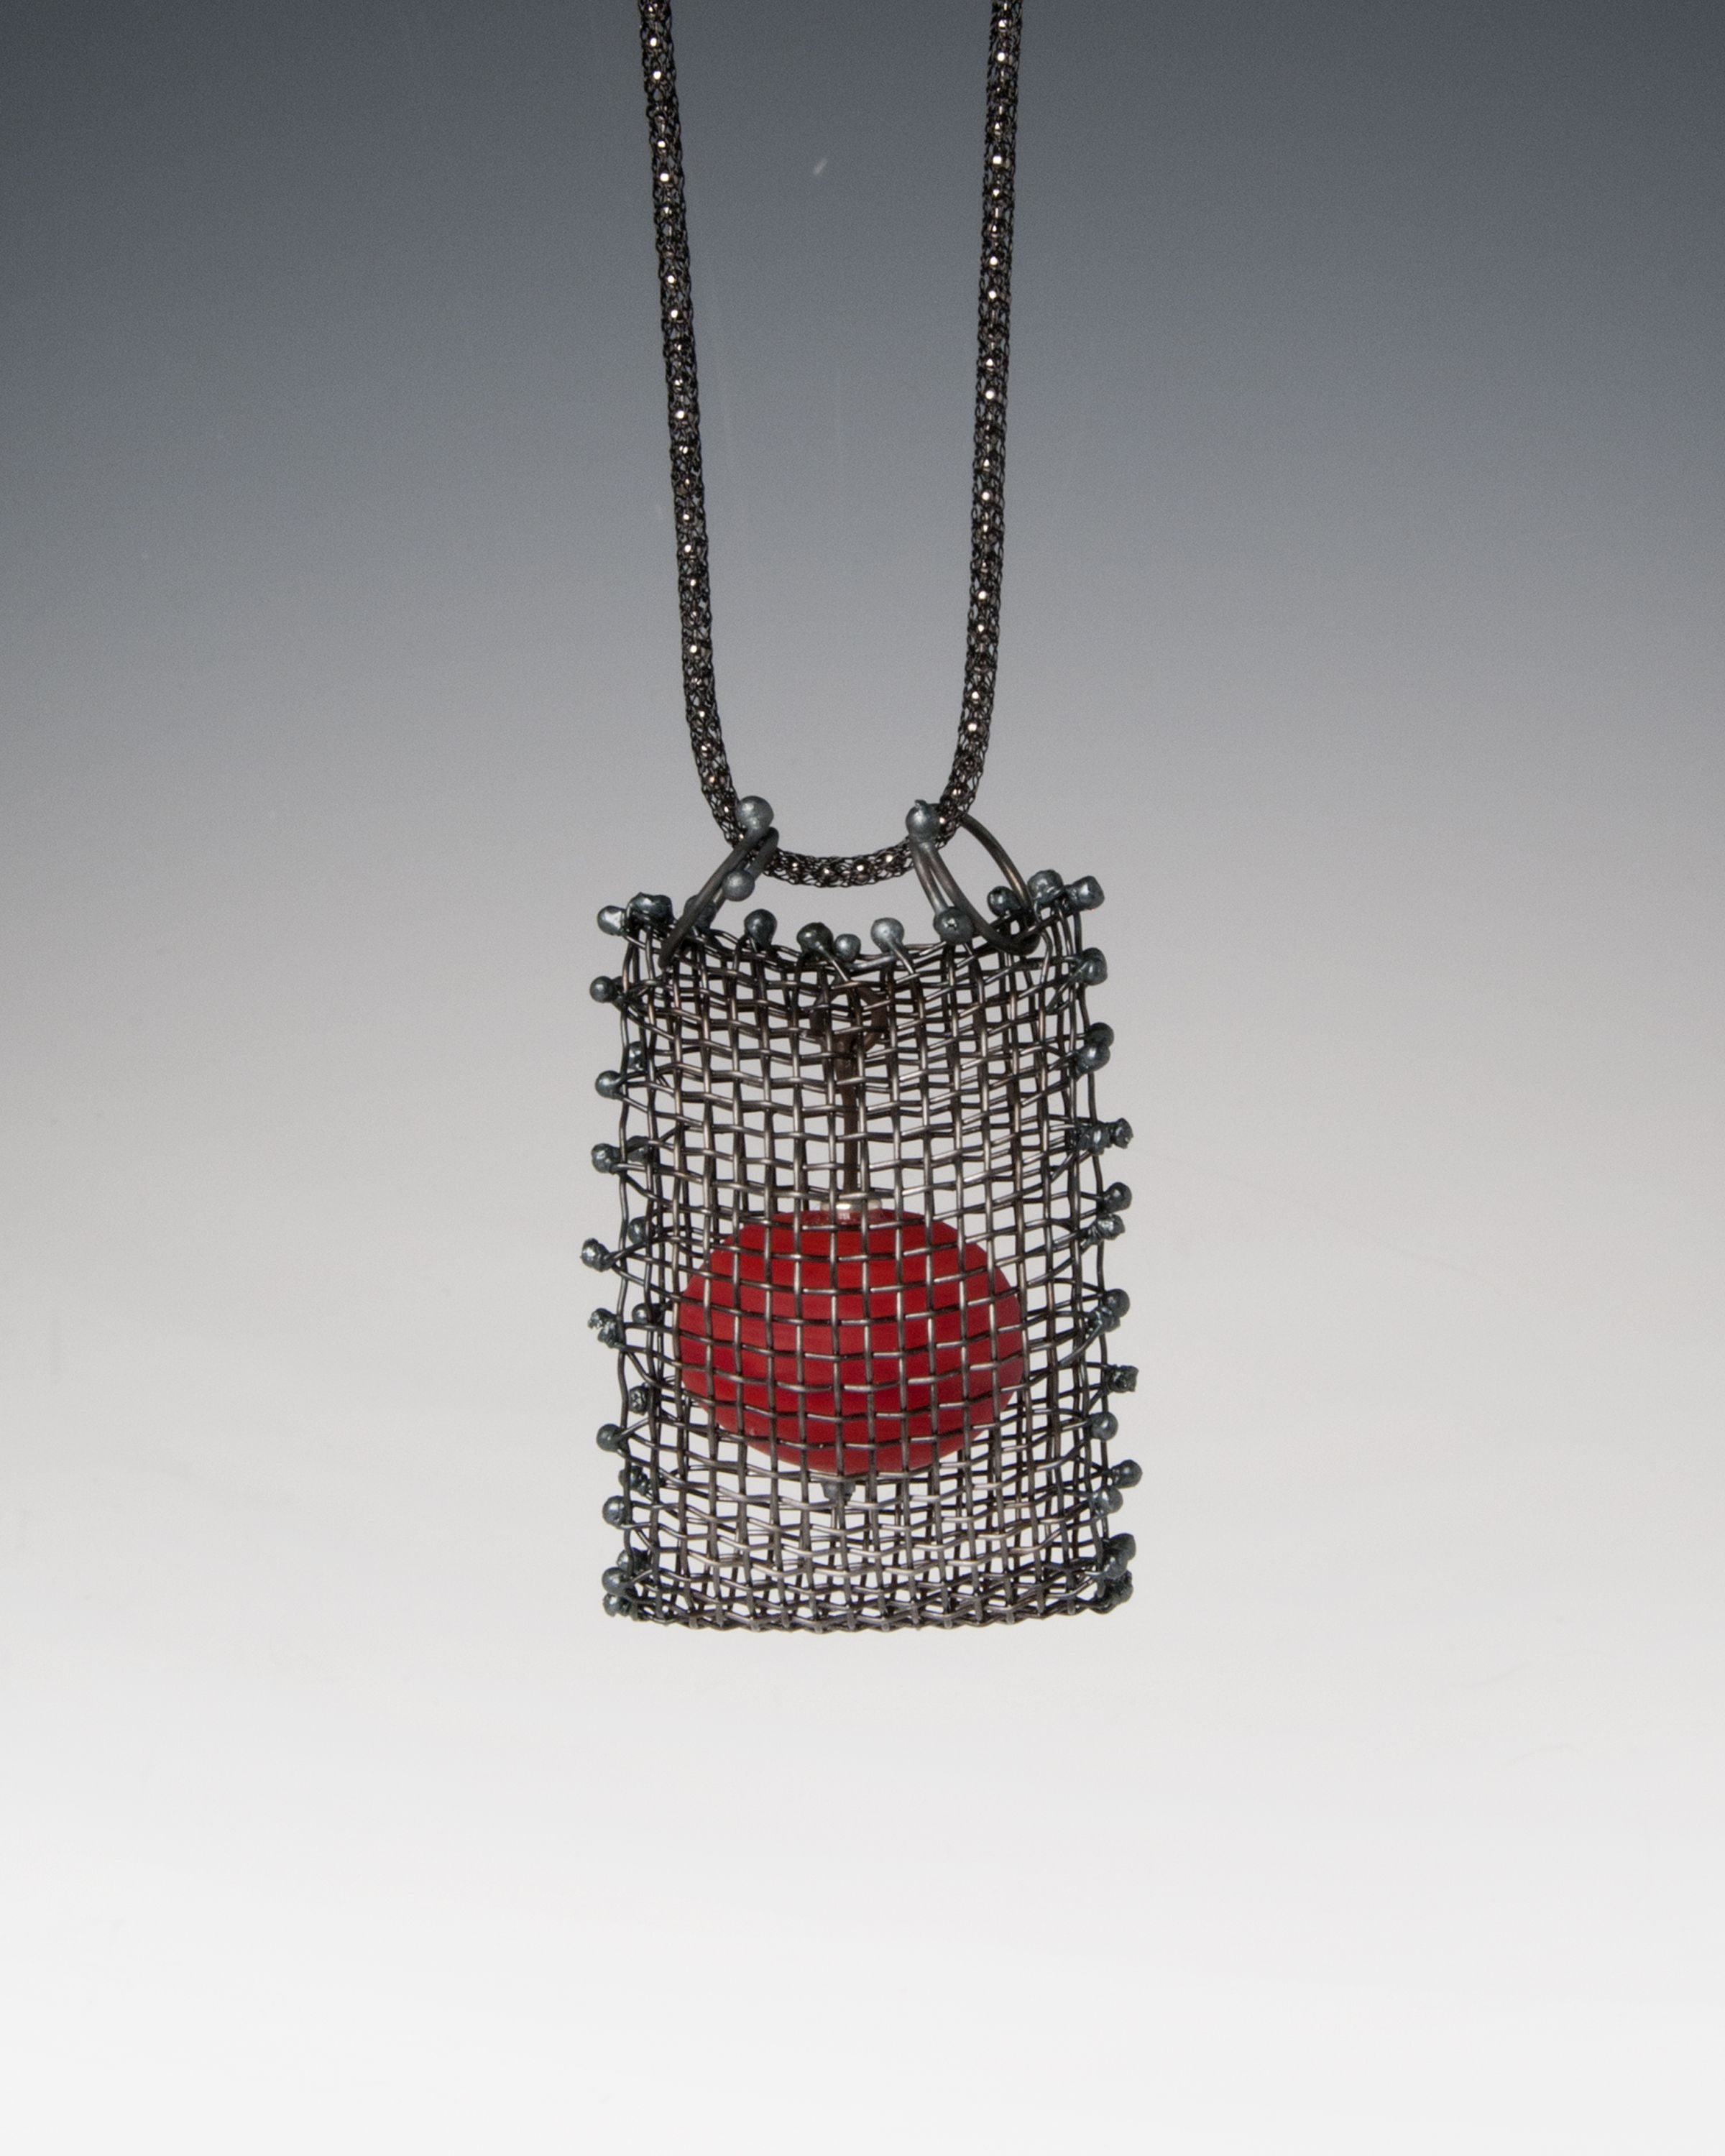 Anne Lindsay Jewelry Black Steel Wire mesh necklace with large ...